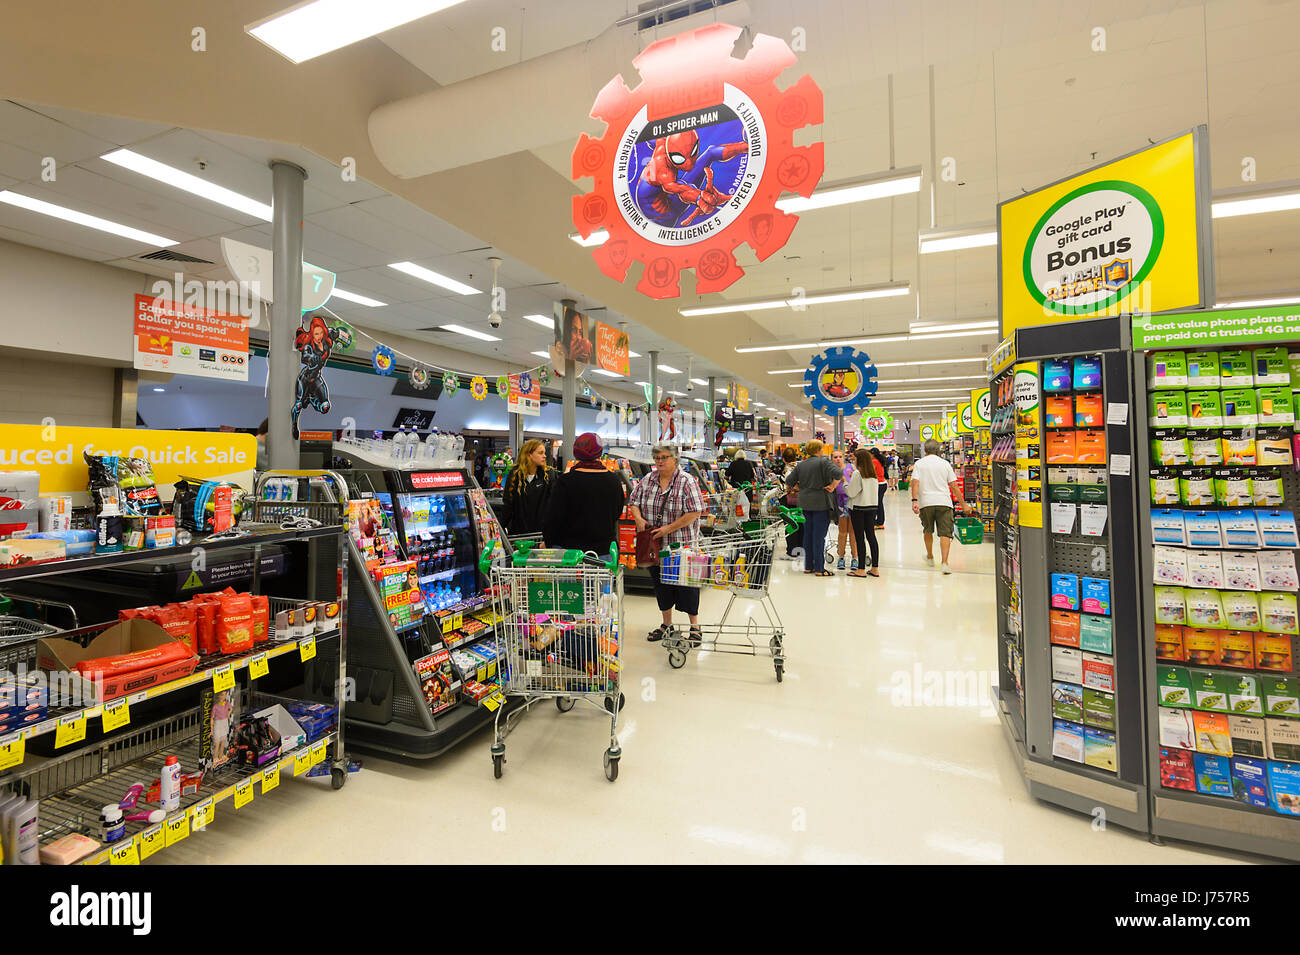 Customers queueing up at Check-outs at Woolworths, Kiama, New South Wales, NSW, Australia - Stock Image